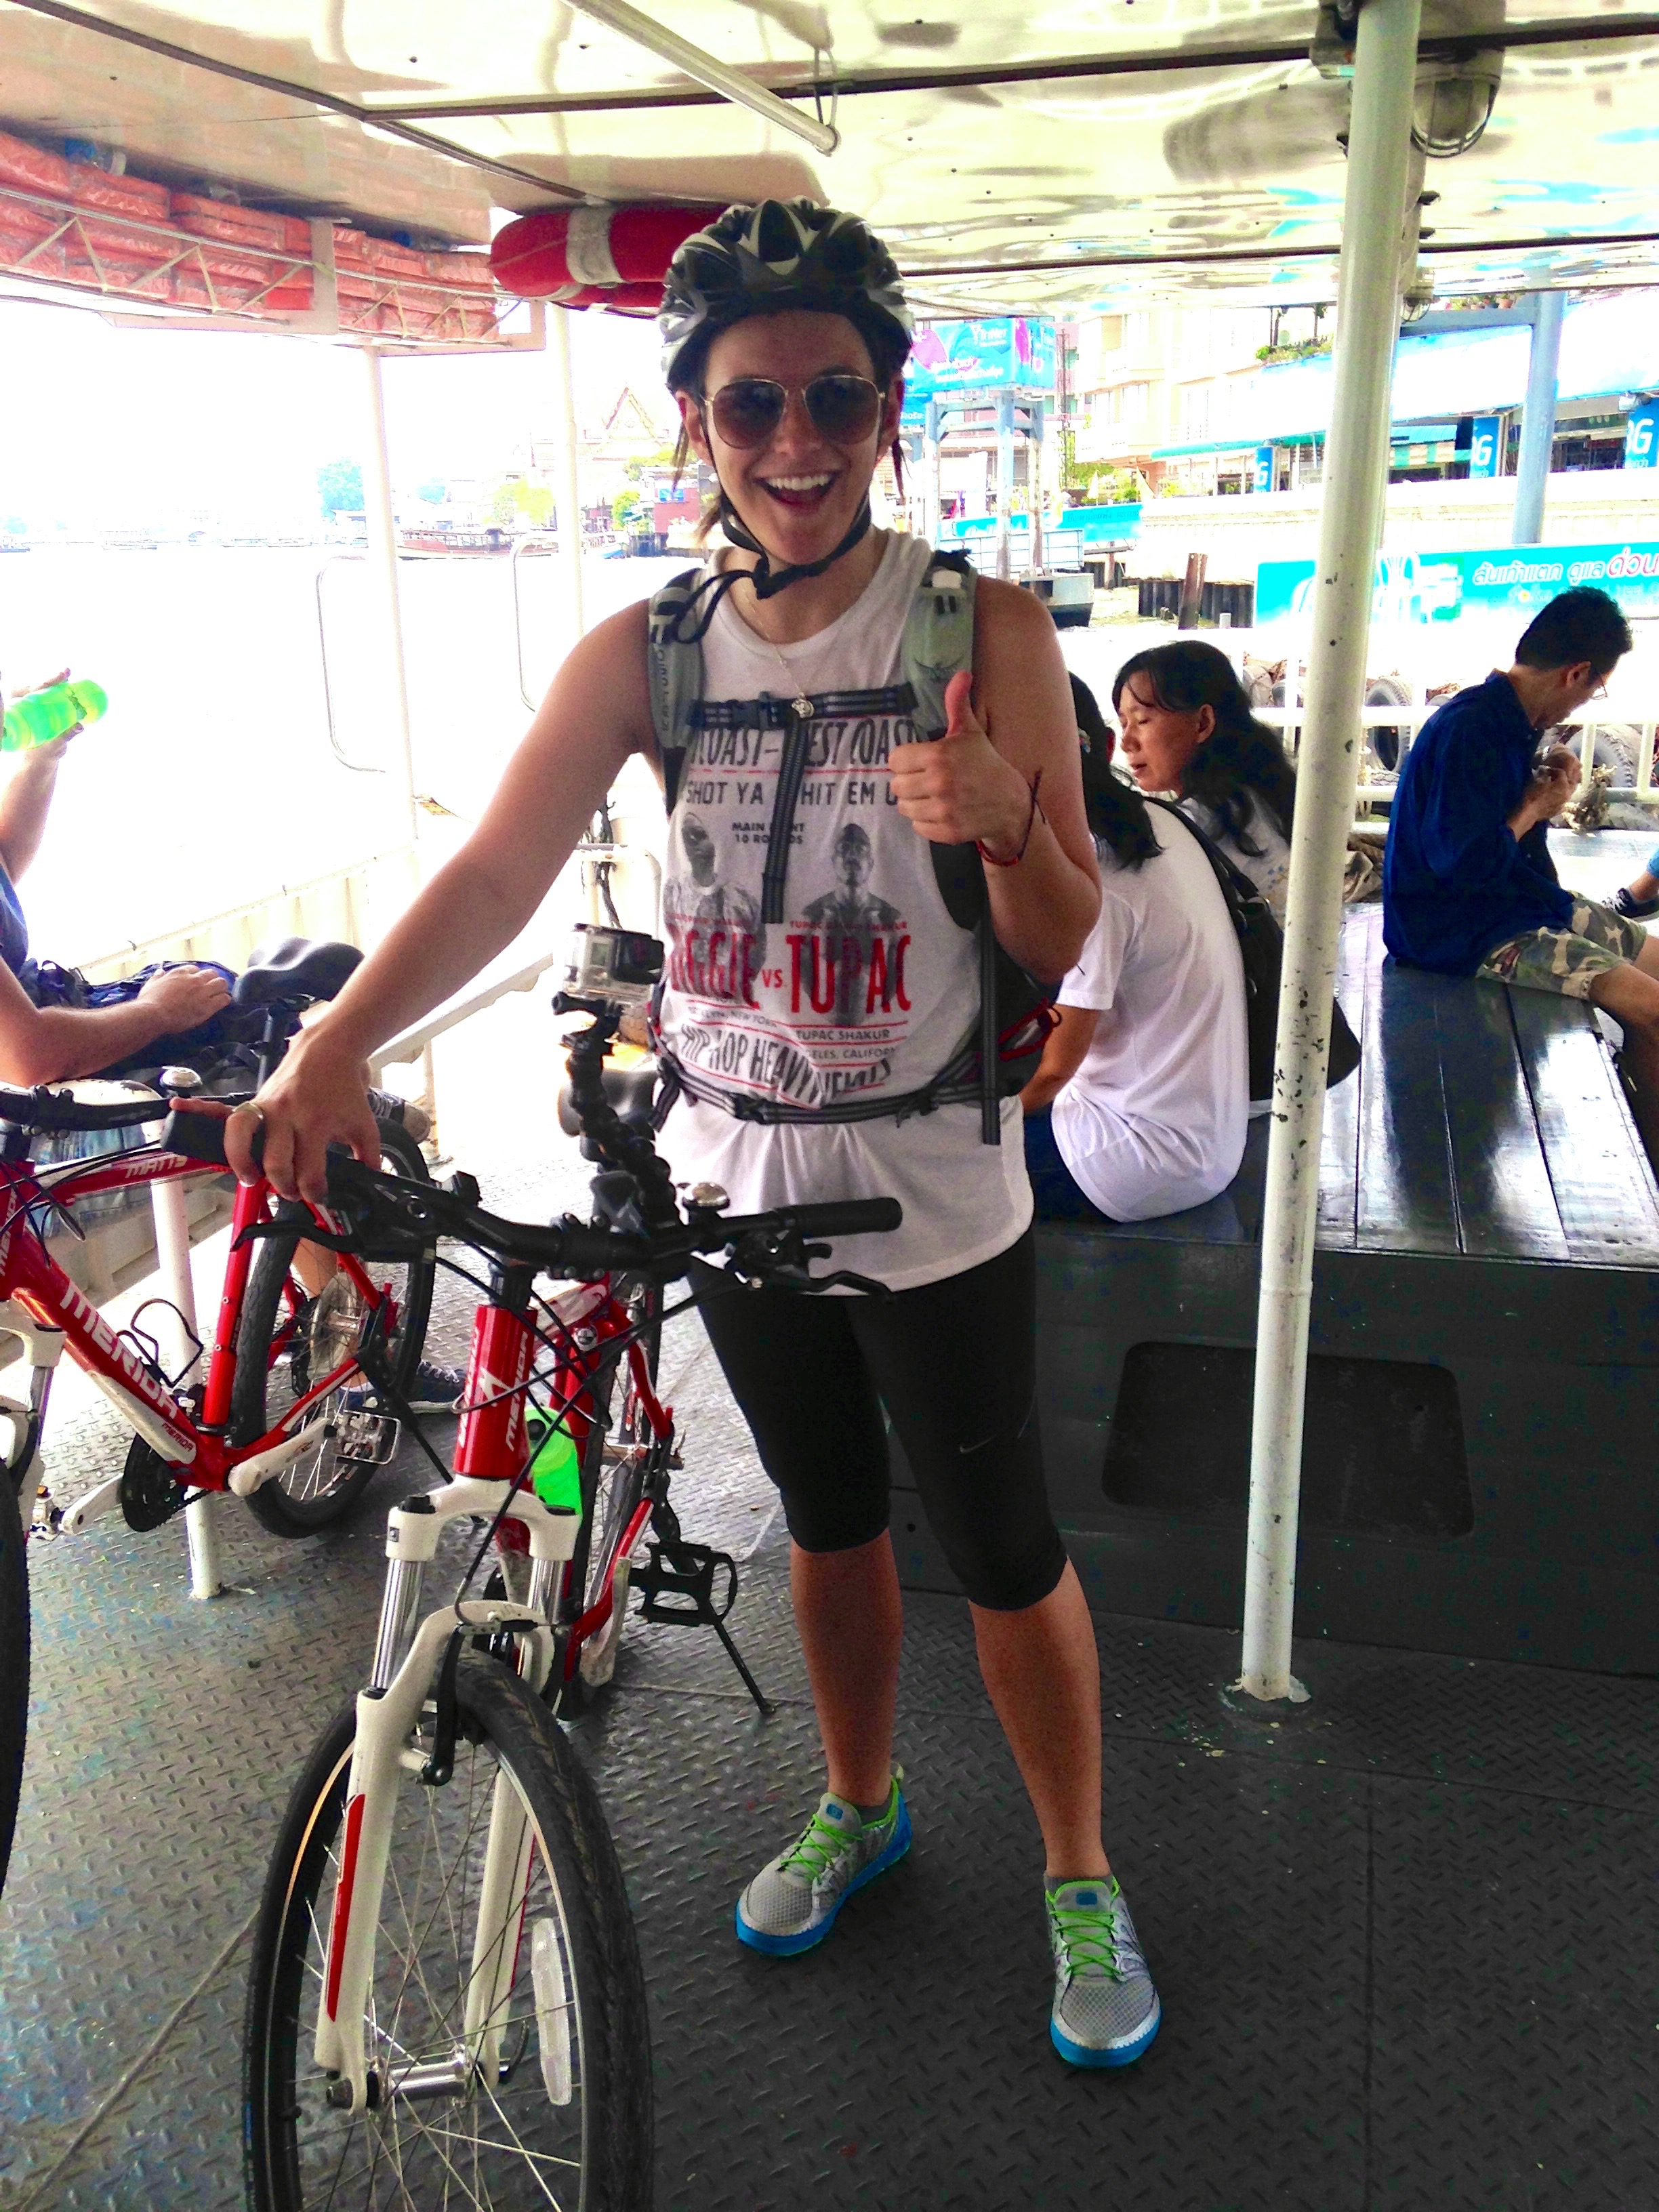 Mom tends to worry most when I sign up for things I'm probably not ready to handle, like a biking tour of Bangkok.